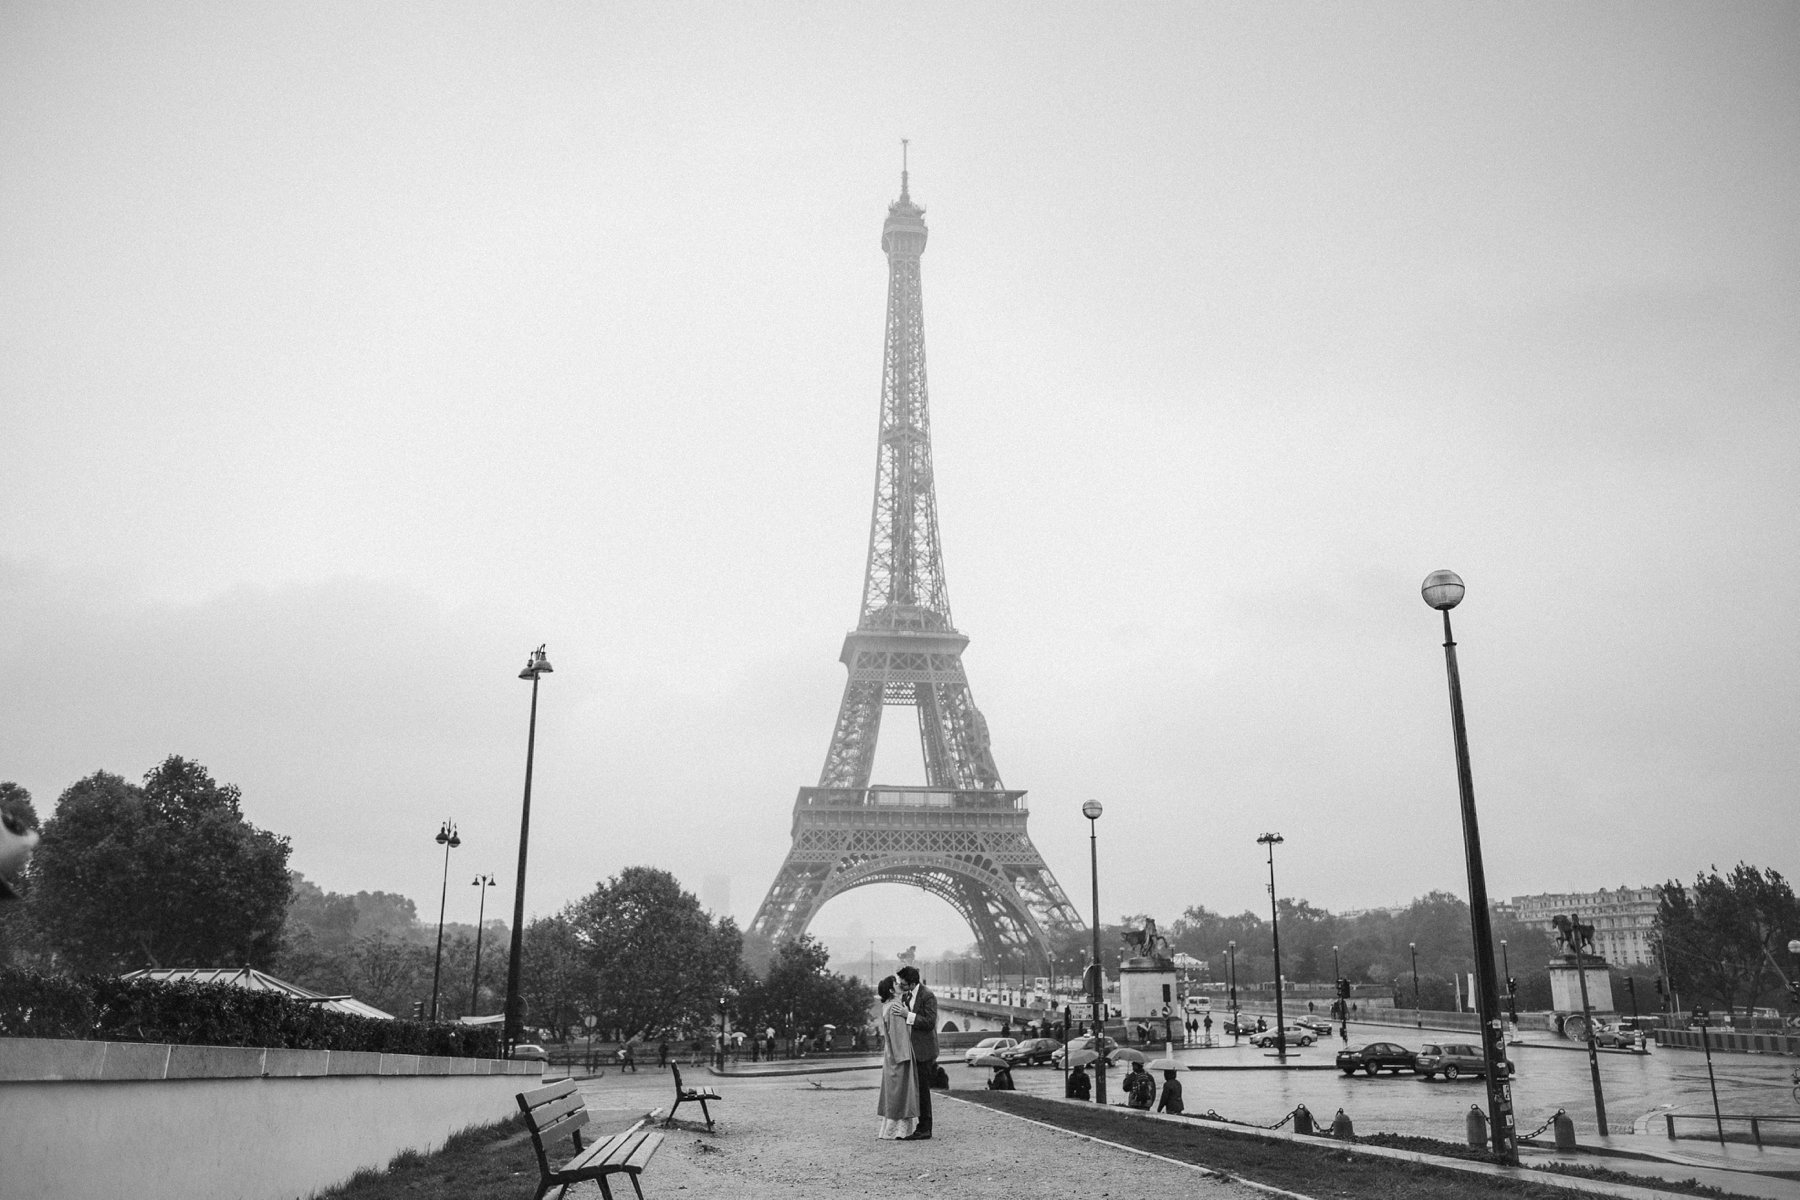 A wedding photo with the Eiffel Tower